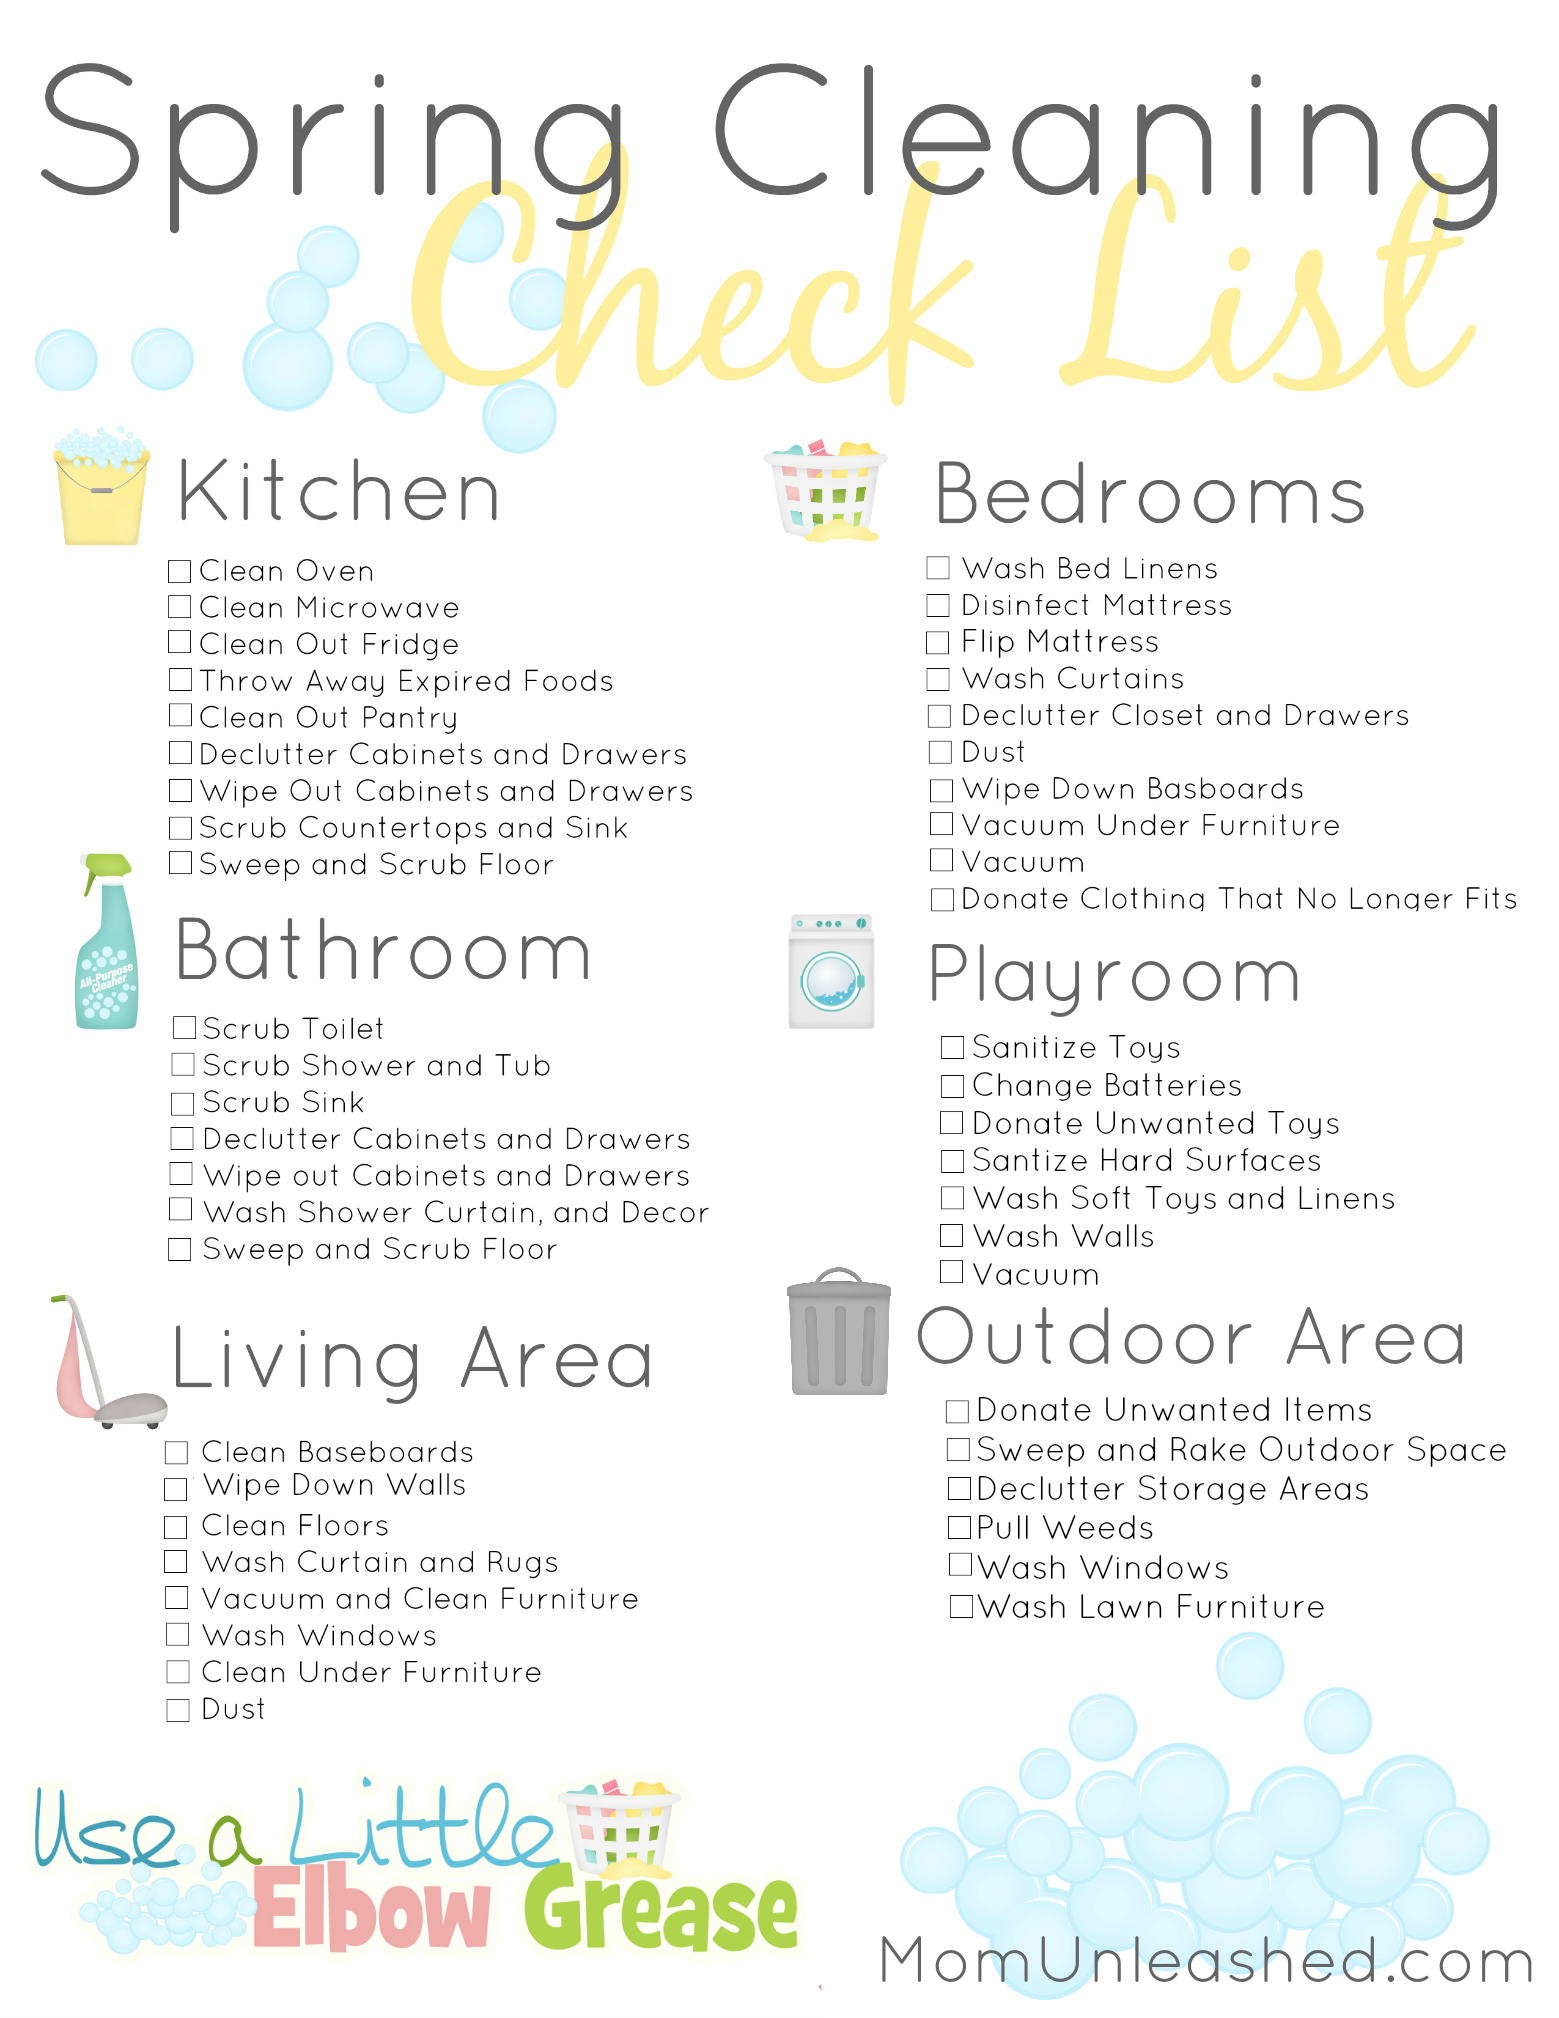 image relating to Cleaning List Printable titled Printable Spring Cleansing List Straightforward Cleansing Strategies